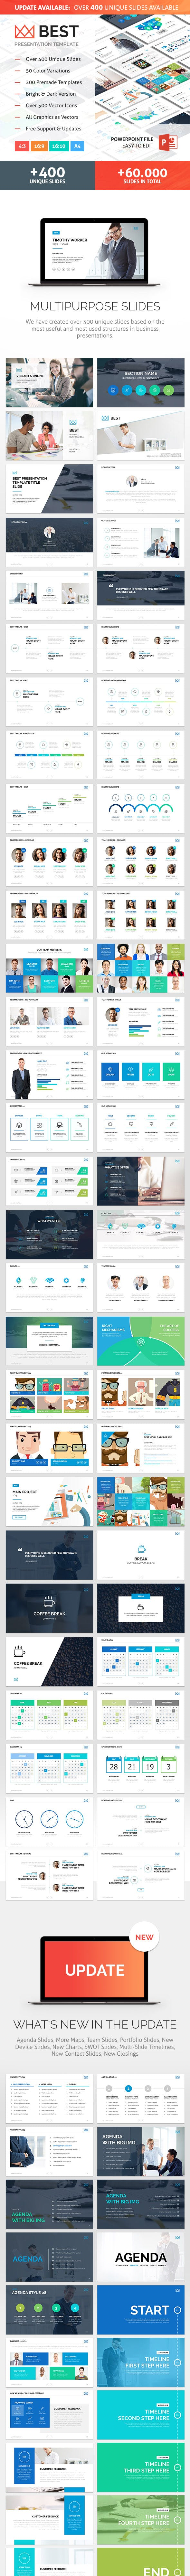 business powerpoint presentation template by ercn1903 graphicriver